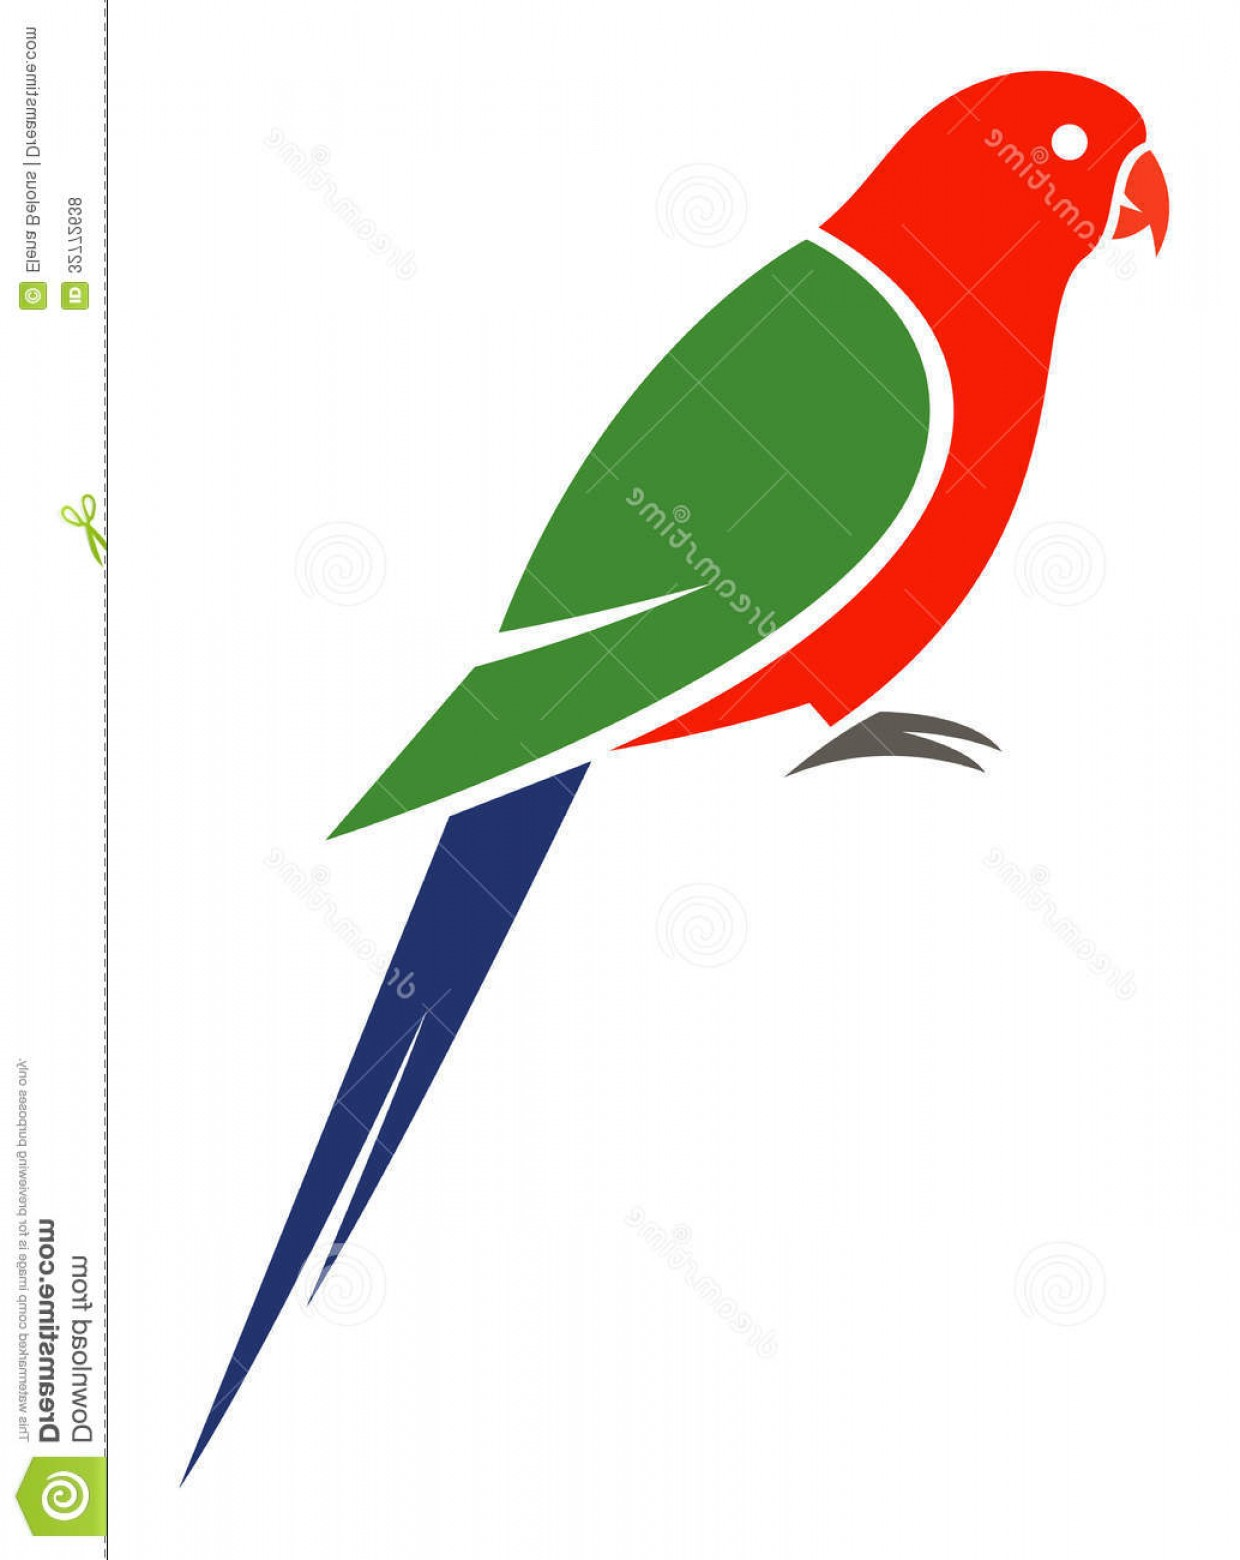 Abstract Vector Art Parrot: Royalty Free Stock Photos Australian King Parrot Stylized Vector Illustration Image